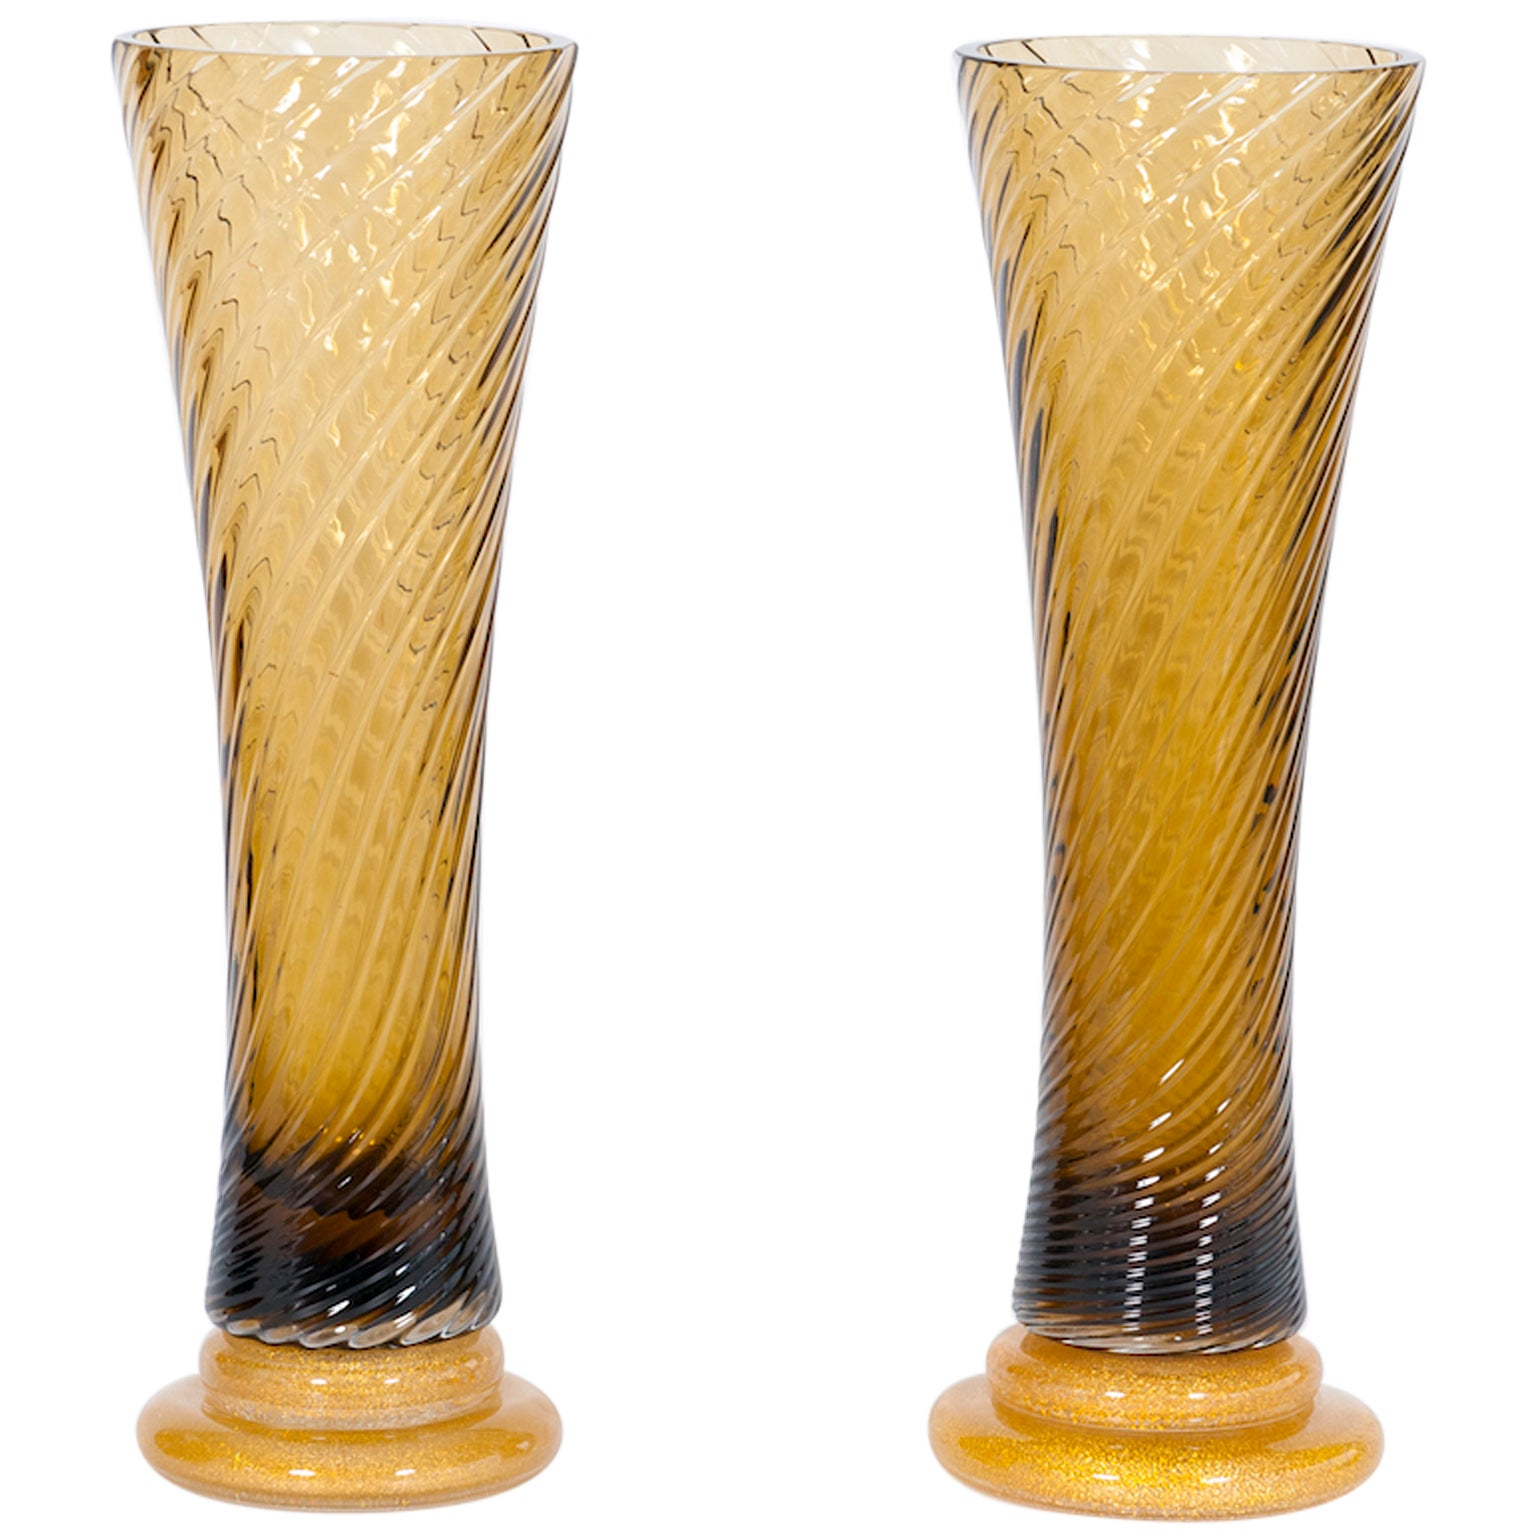 Giant Pair of amber and gold Glasses Vase in blown Murano Glass 1980s